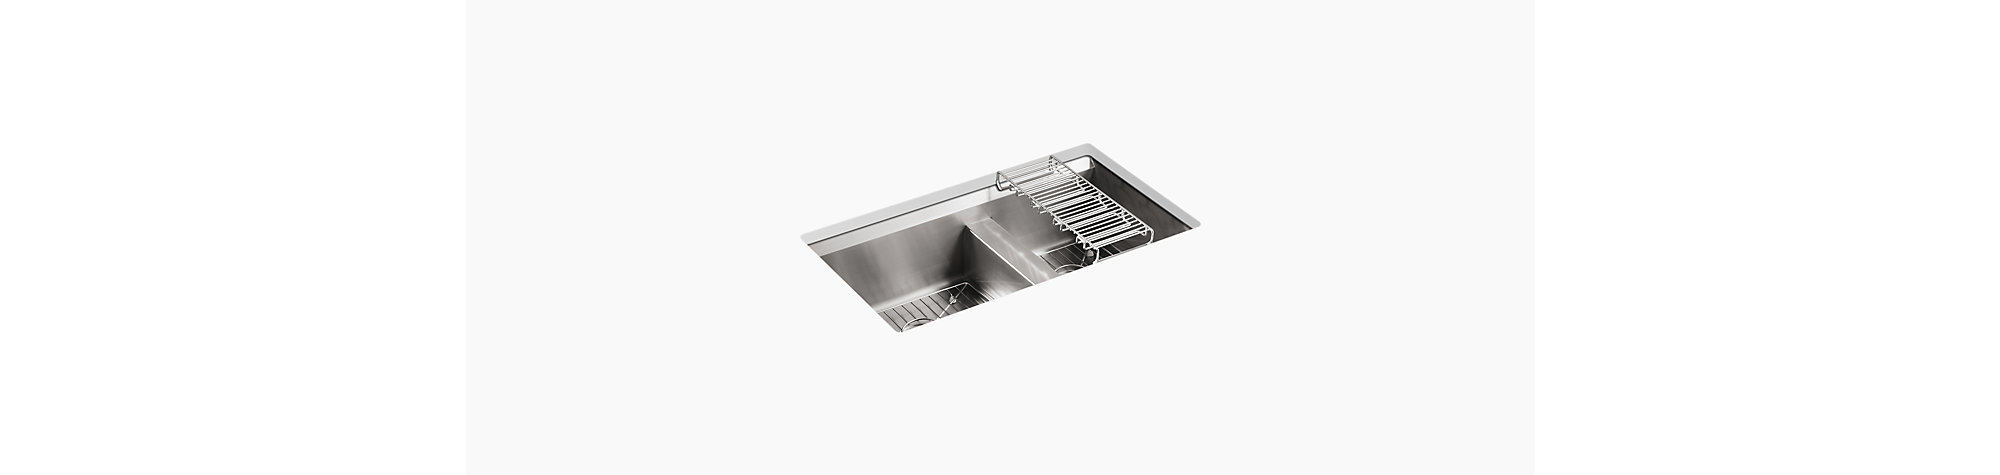 Undermount Kitchen Sinks For Designer Kitchens Kohler